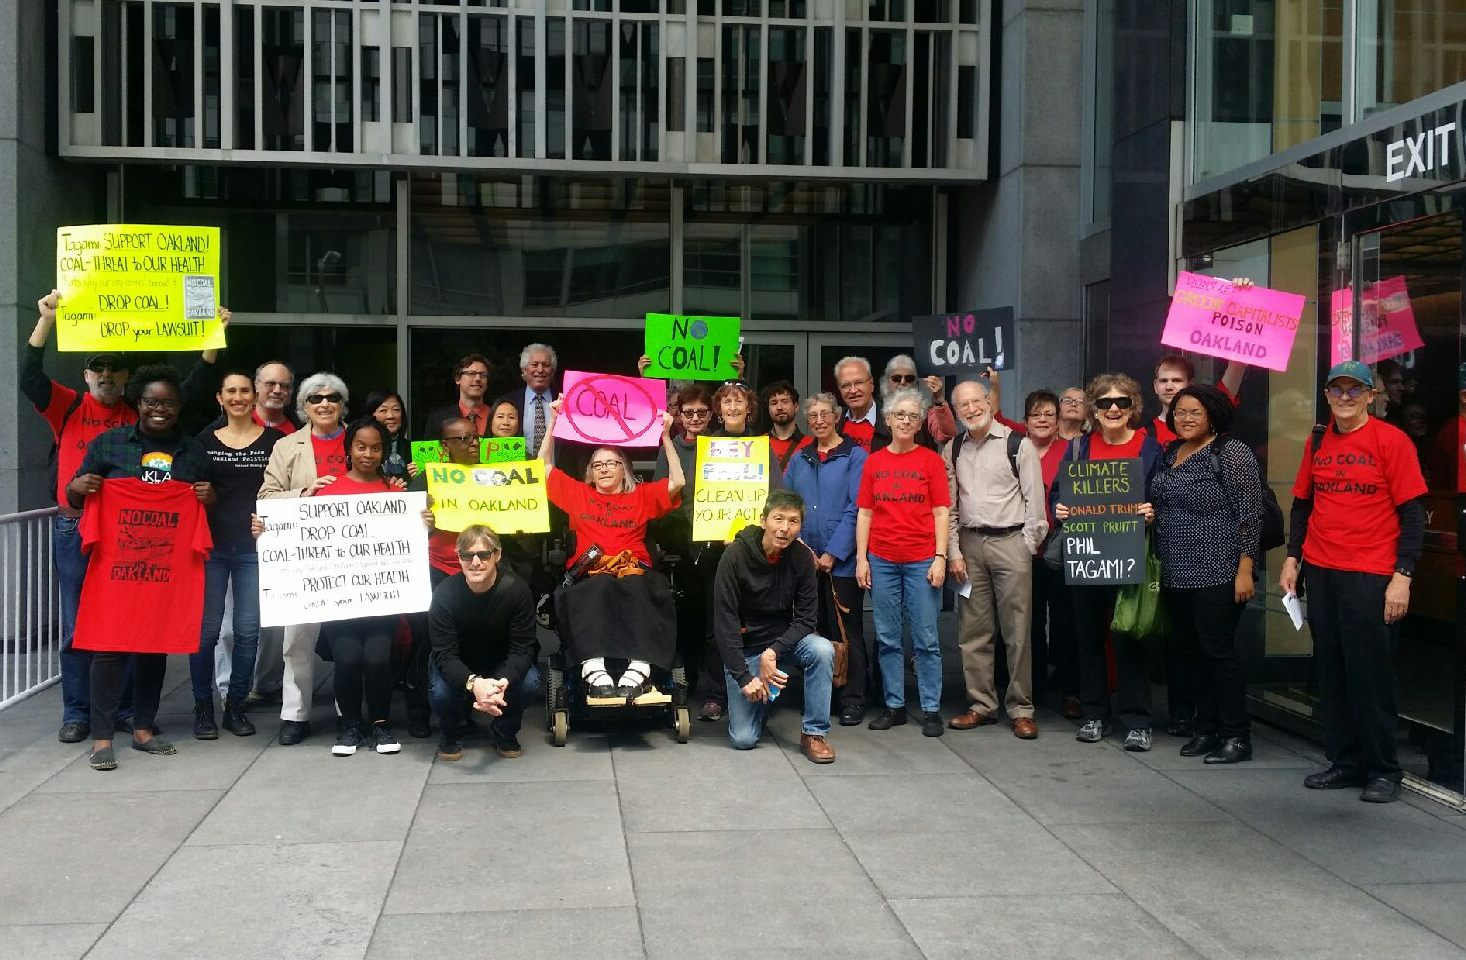 No Coal at the Federal Courthouse in San Francisco 4-20-17